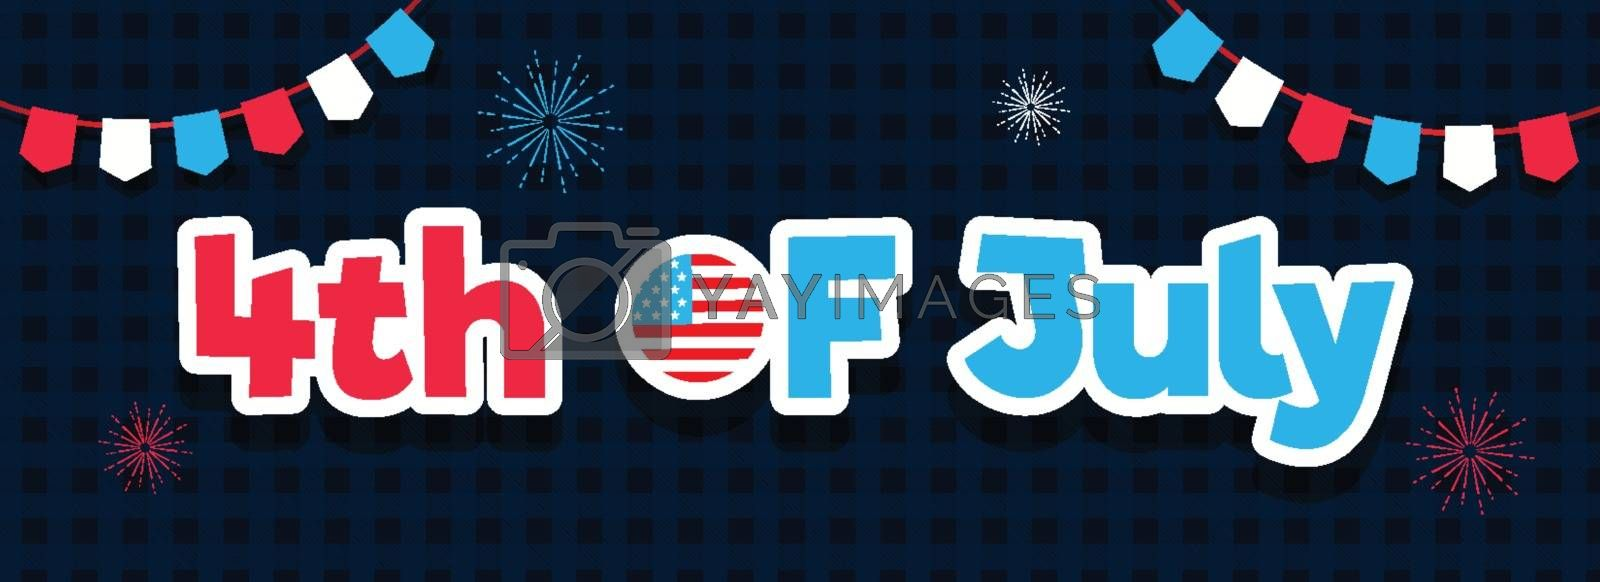 Sticker style text 4th Of July with bunting flags decorated on black and blue tartan pattern background. Header or banner design.